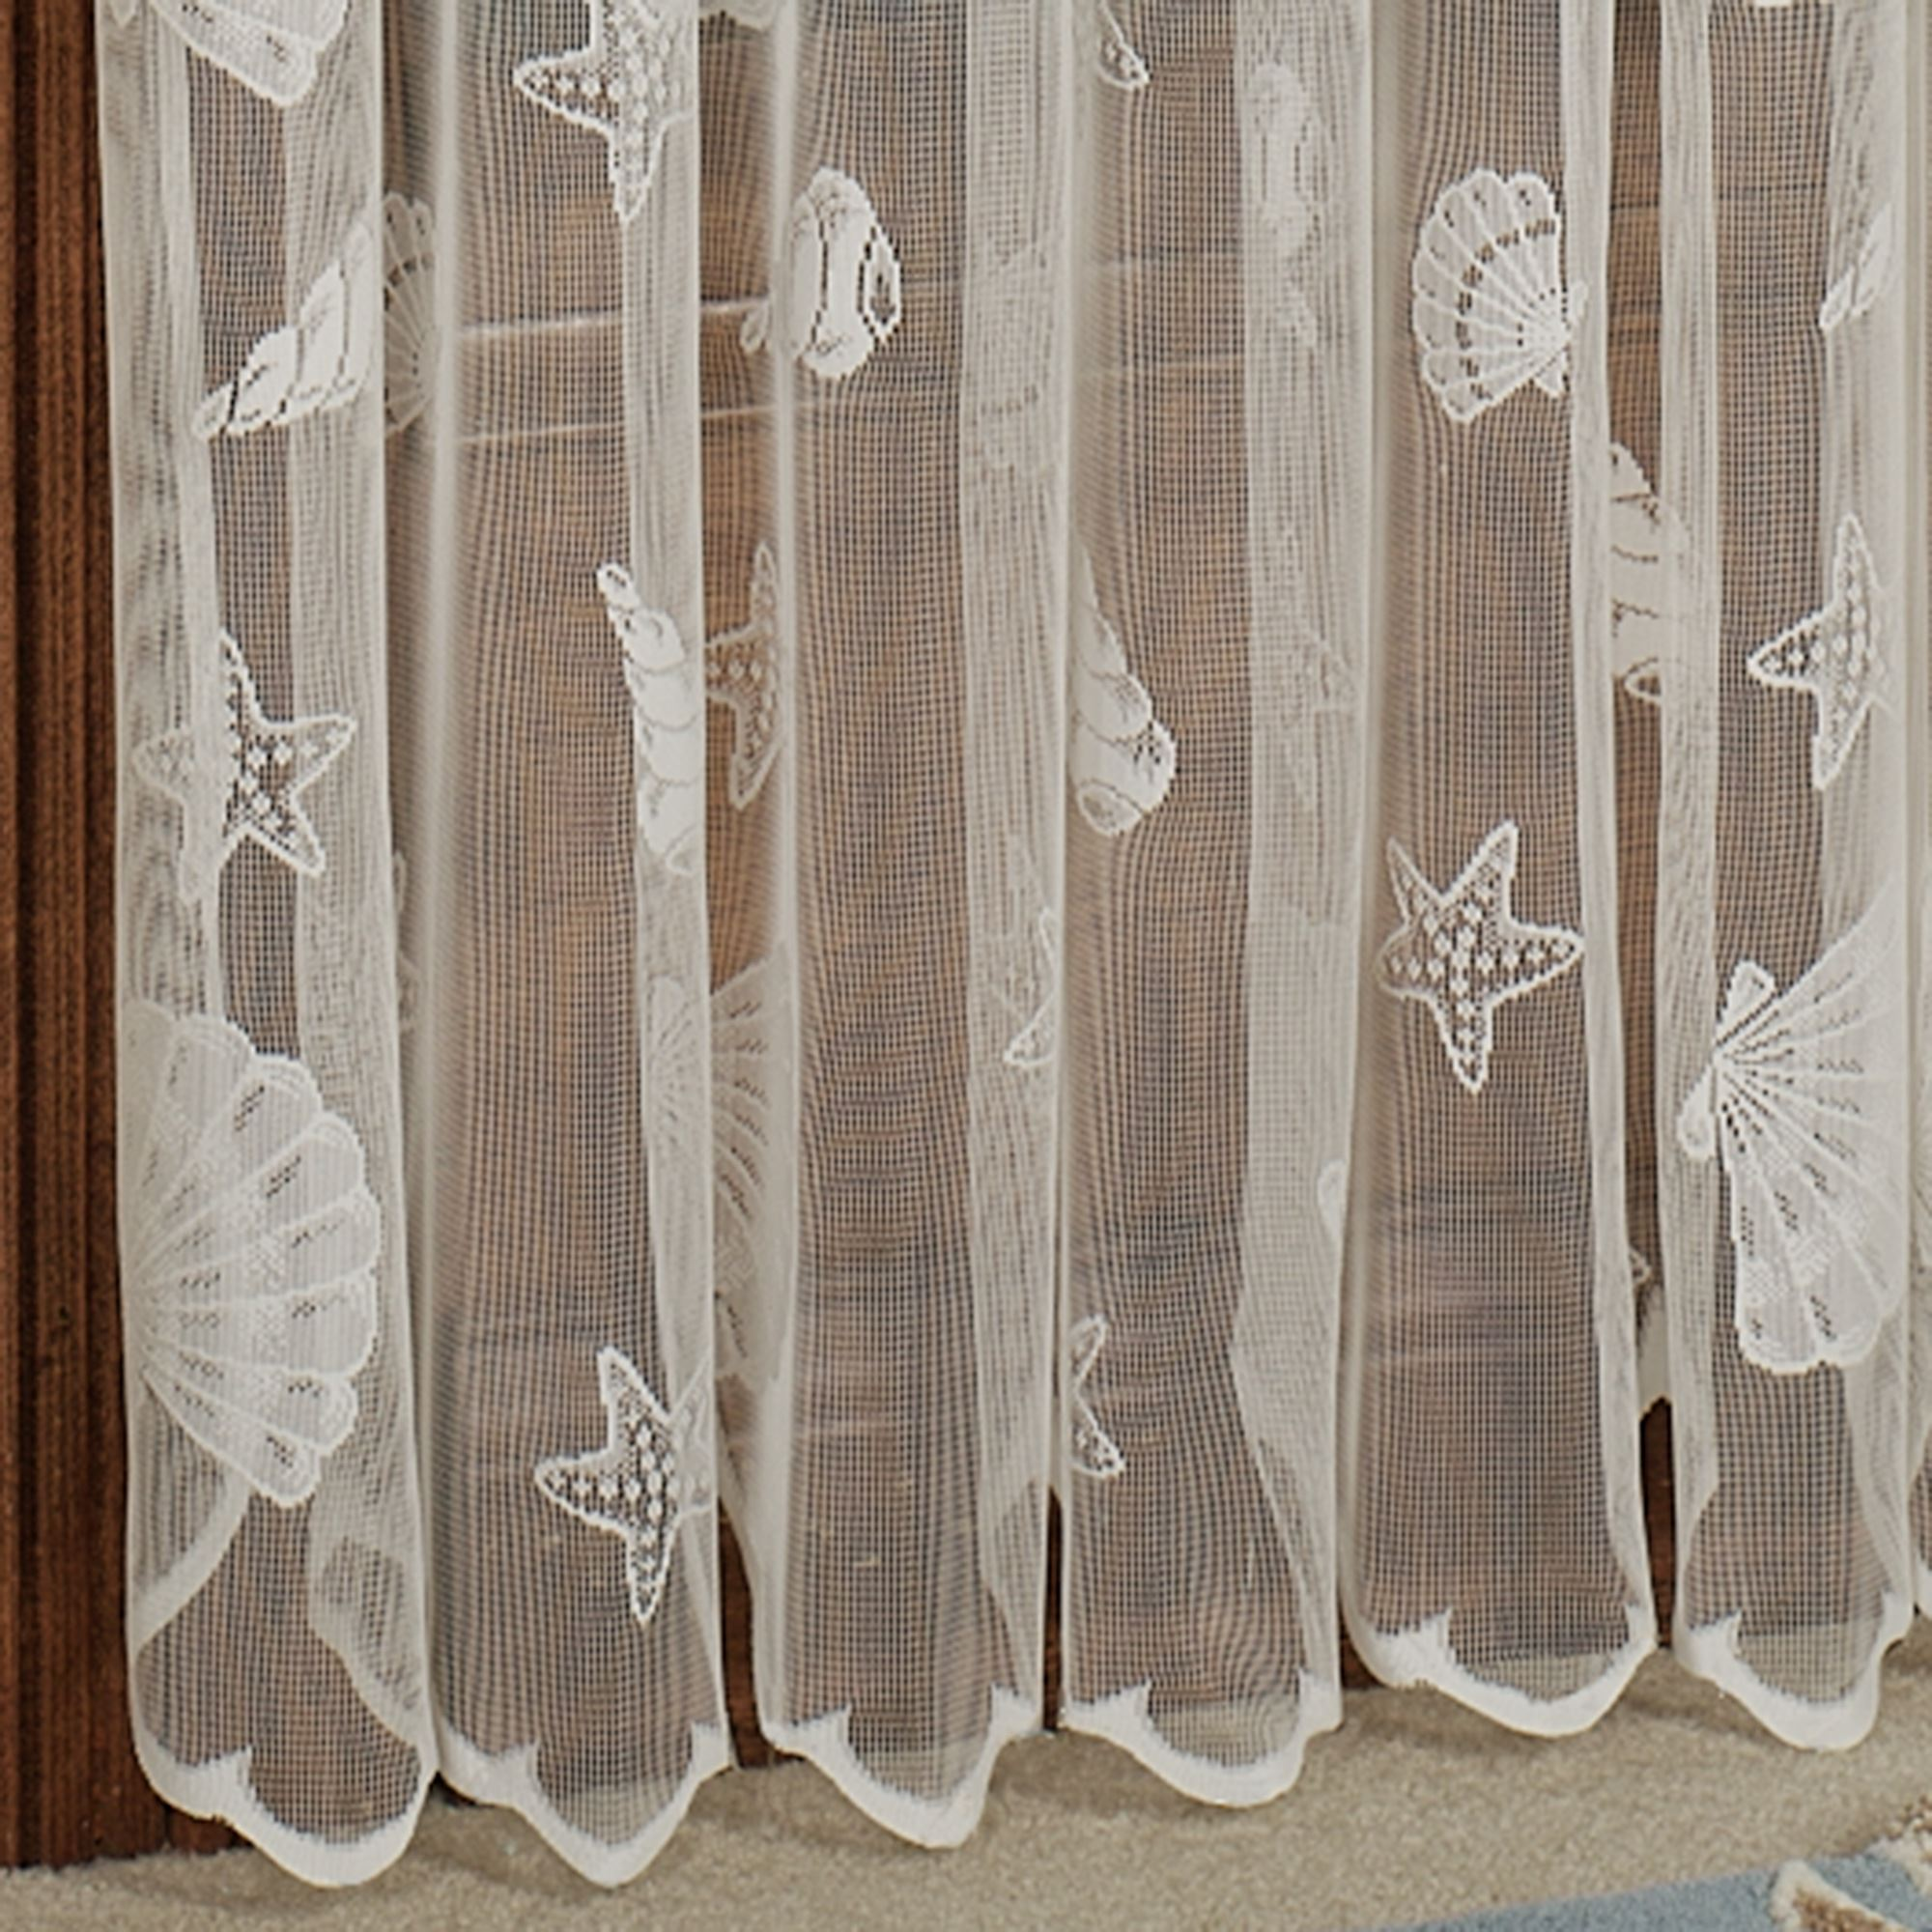 French Lace Curtains Seashells Lace Window Treatment